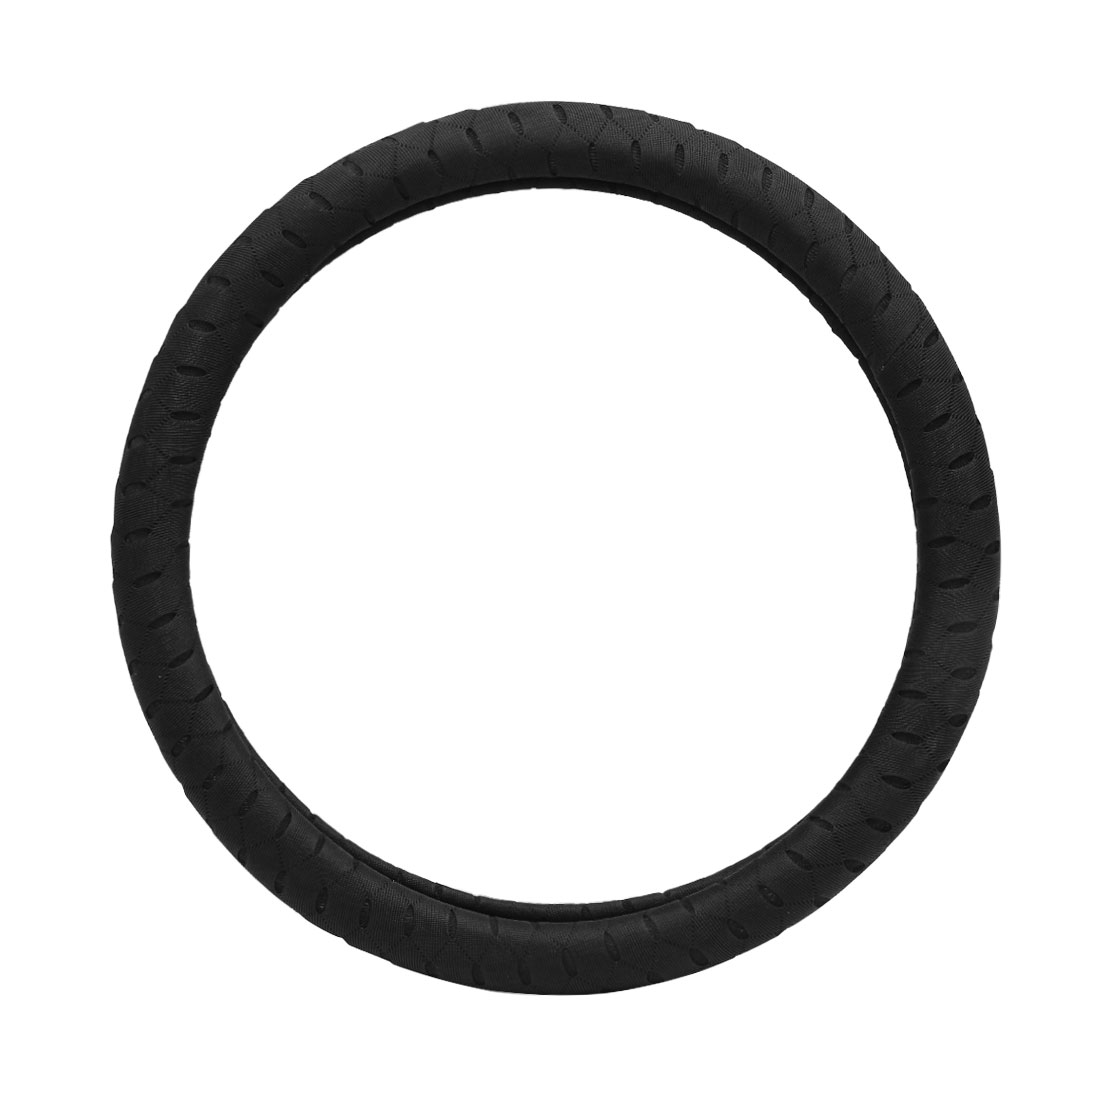 Comfortable Universal Car Steering Wheel Cover Protector for Vehicle Car 35-36CM